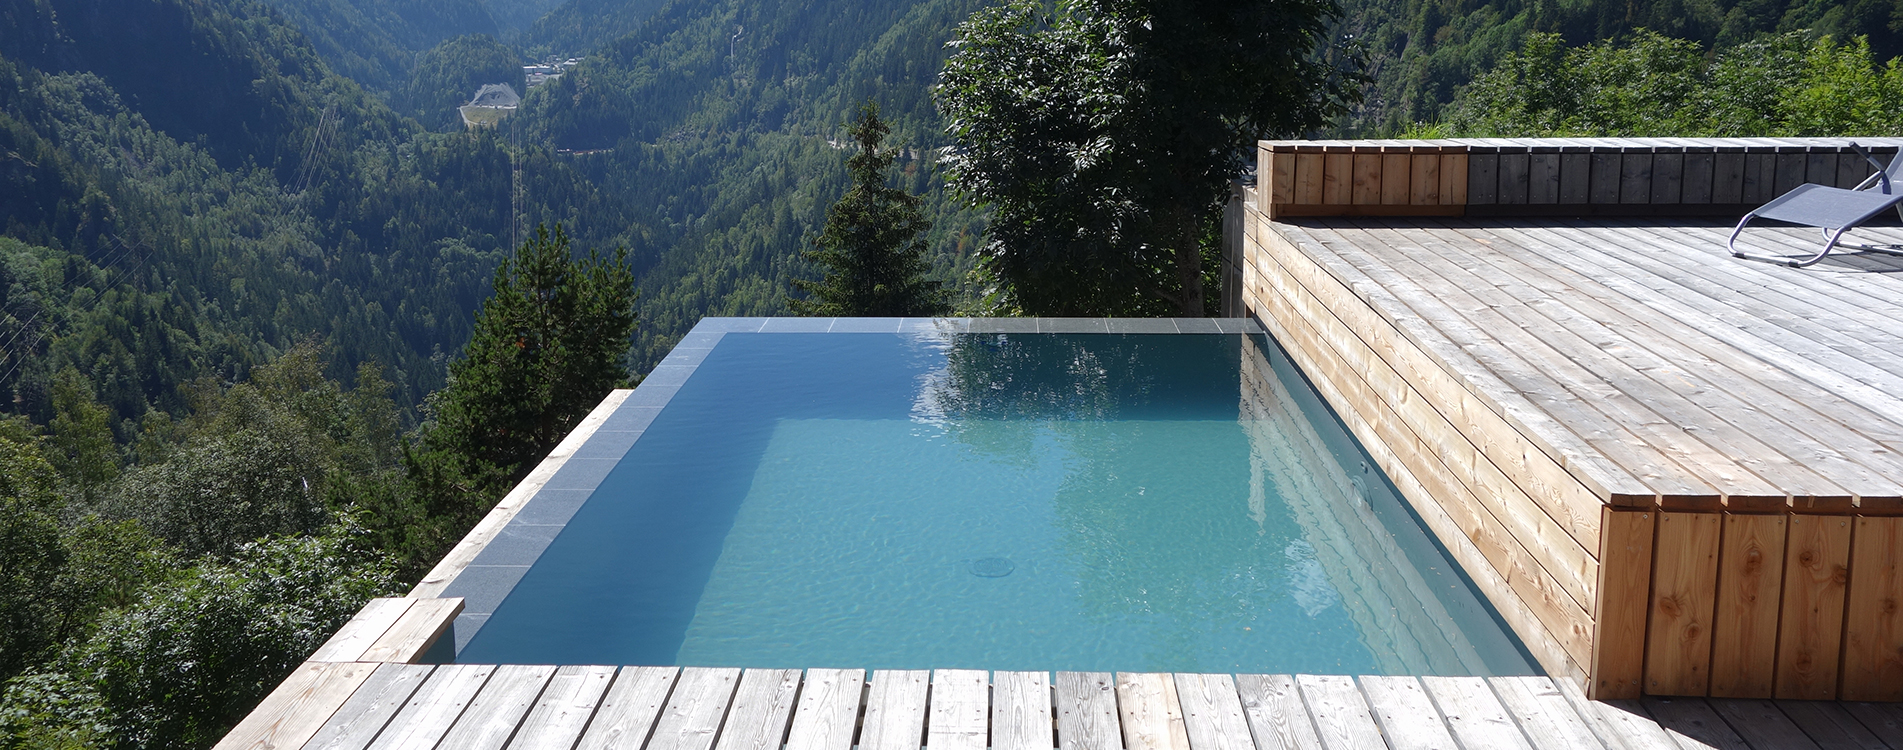 Construction piscine a debordement construction piscine for Construction piscine